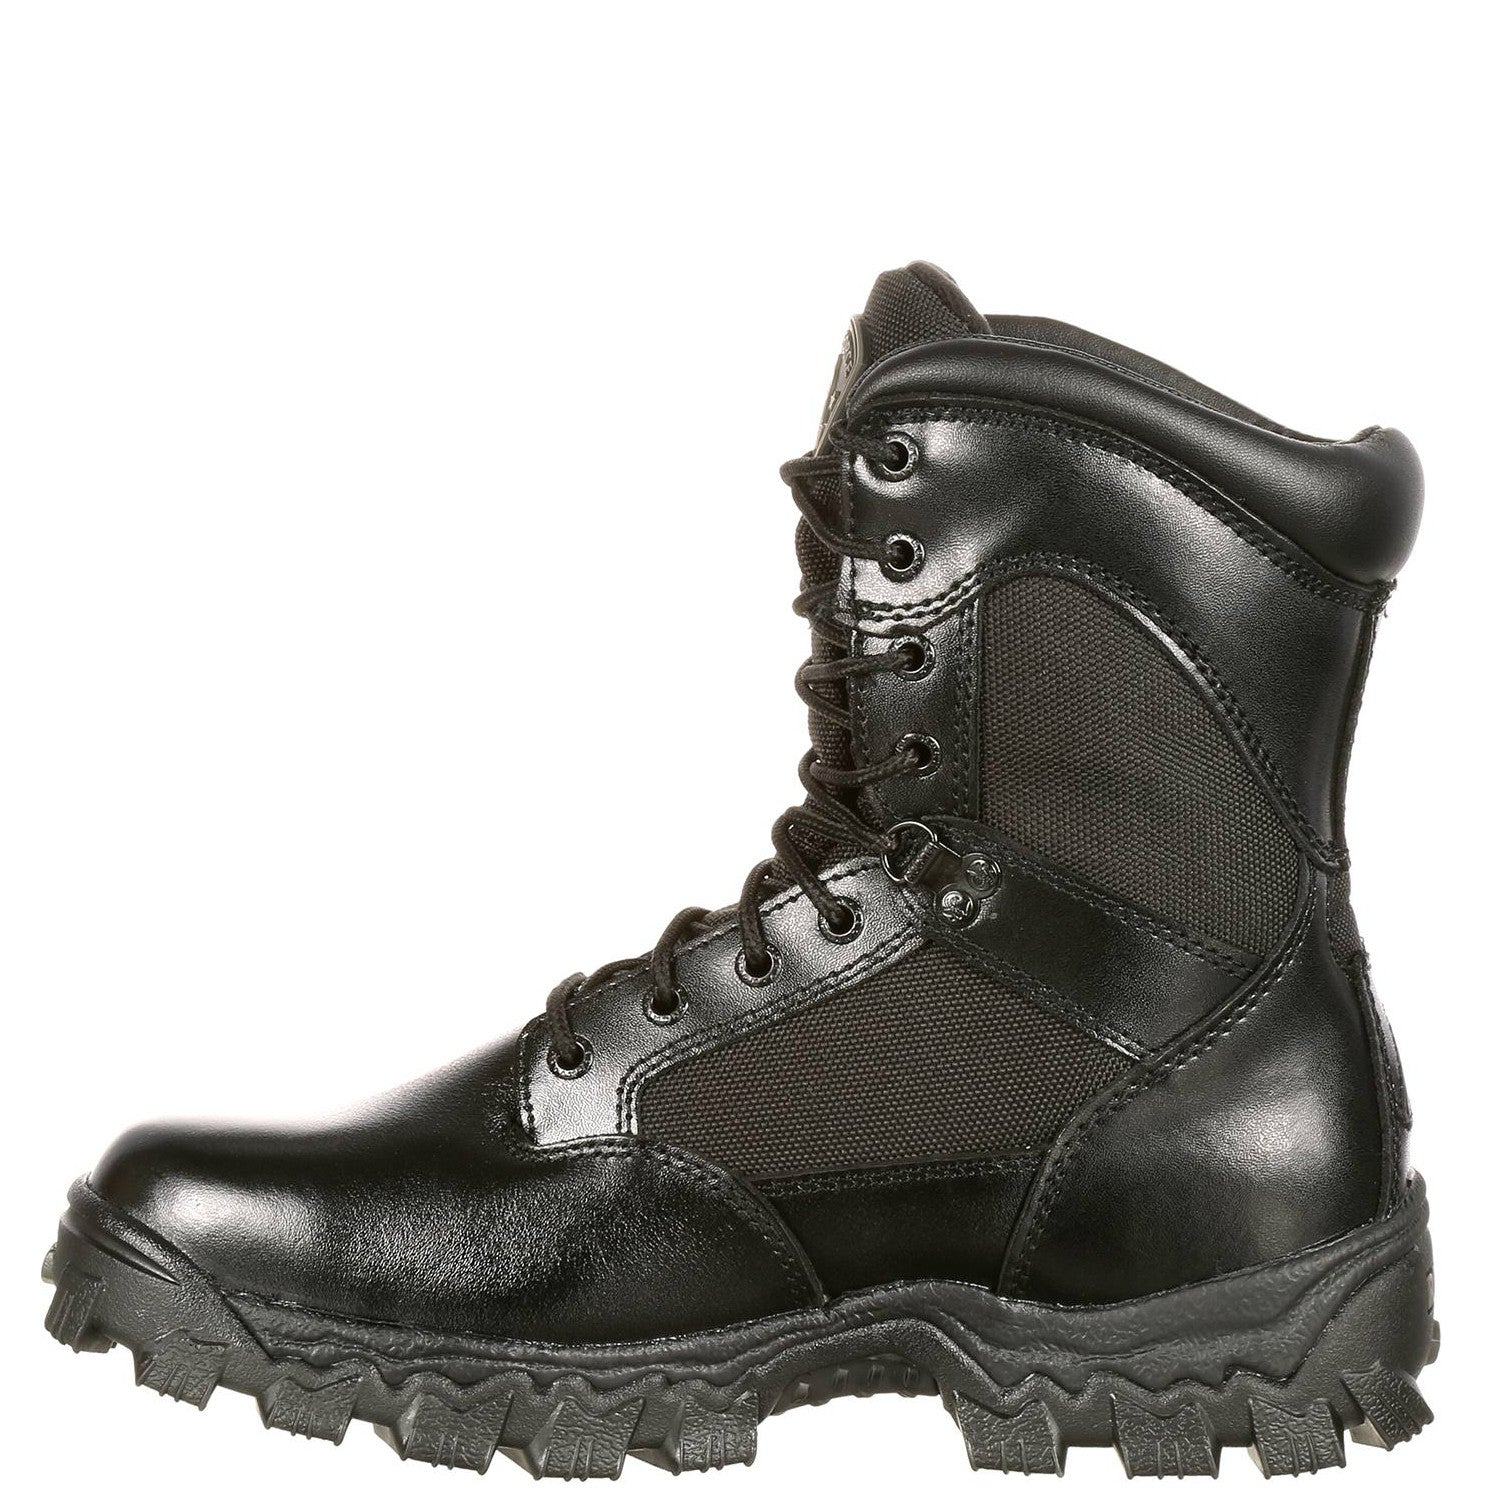 76d839d0530 Rocky Men's AlphaForce WP Duty Boot - Black FQ0002165